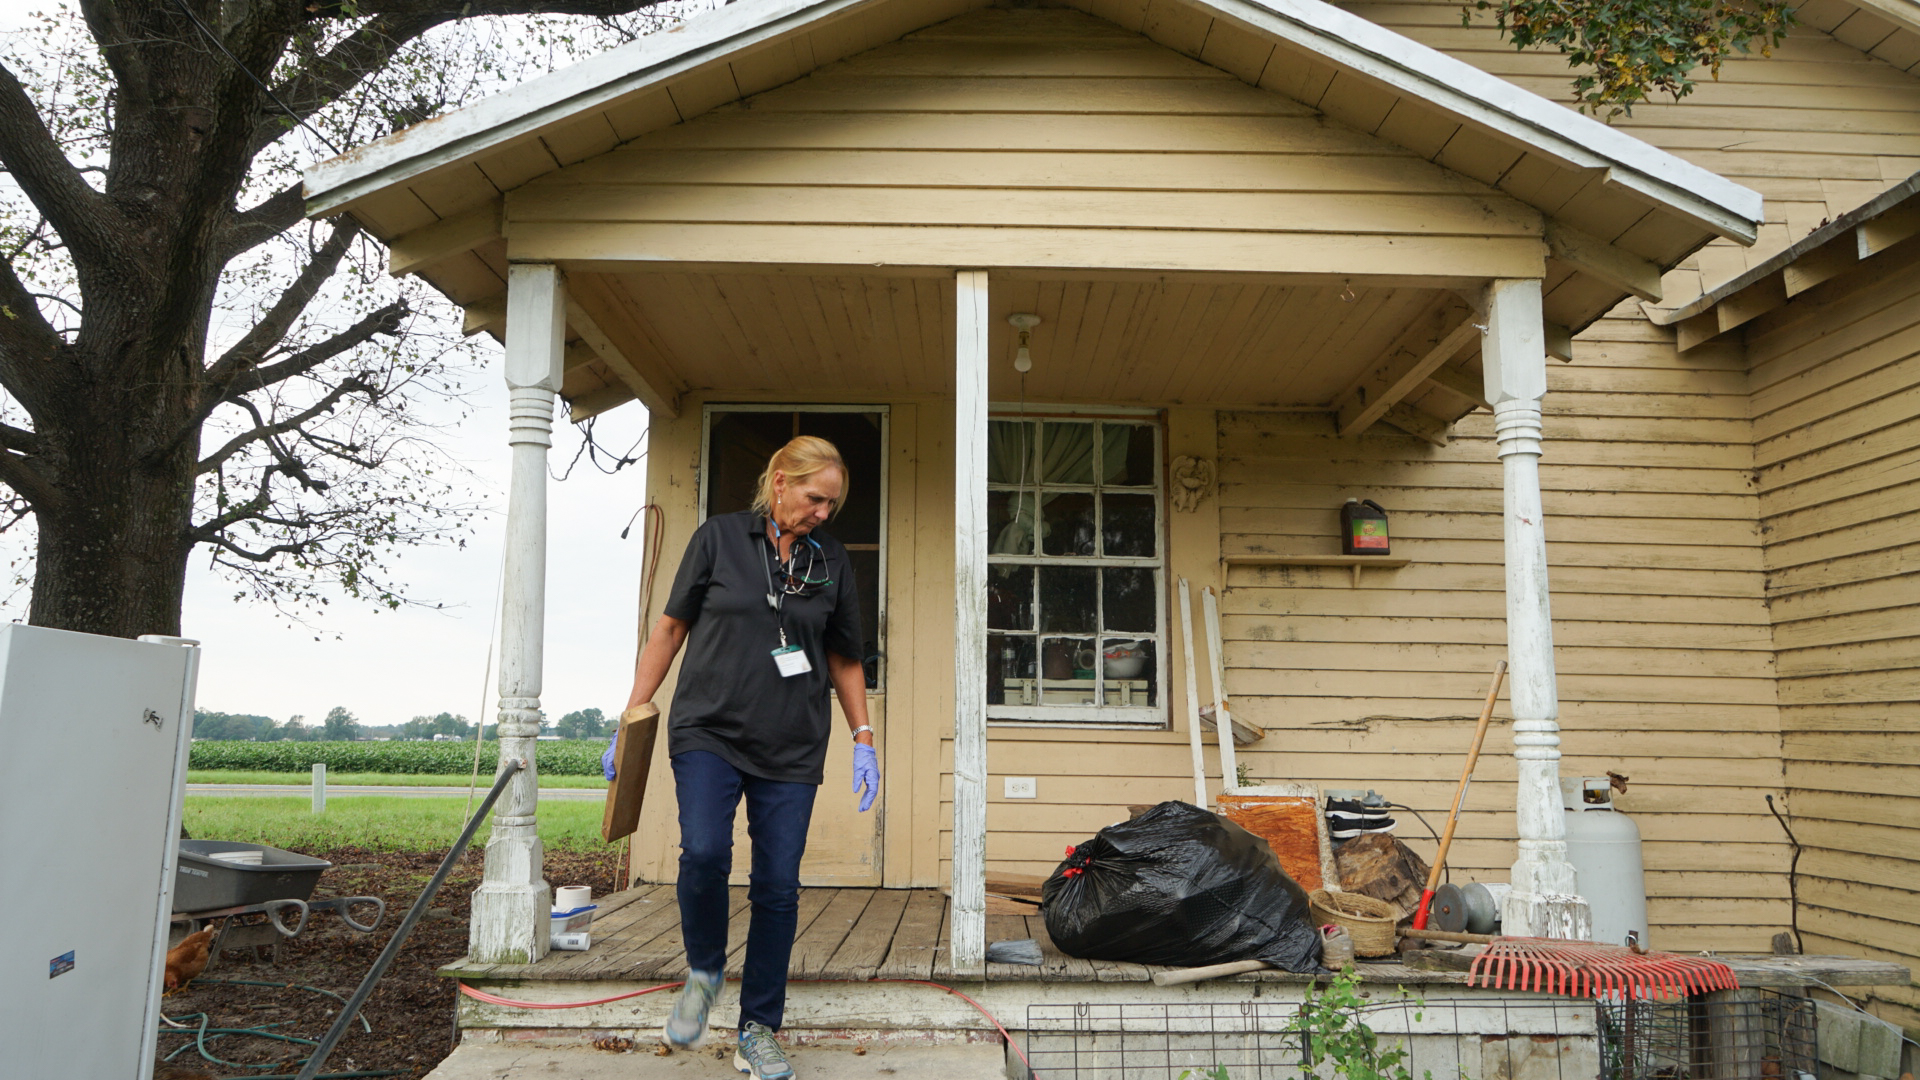 Nurse Gena Byrd, a clinician for local farmworkers at Greene County Health Care, at the home of an elderly patient outside Snow Hill, North Carolina. The home had recently flooded as a result of Hurricane Florence, and Byrd and other staff, as well as volunteers, made repairs to make the home safer. (Lara Cooper/Direct Relief)